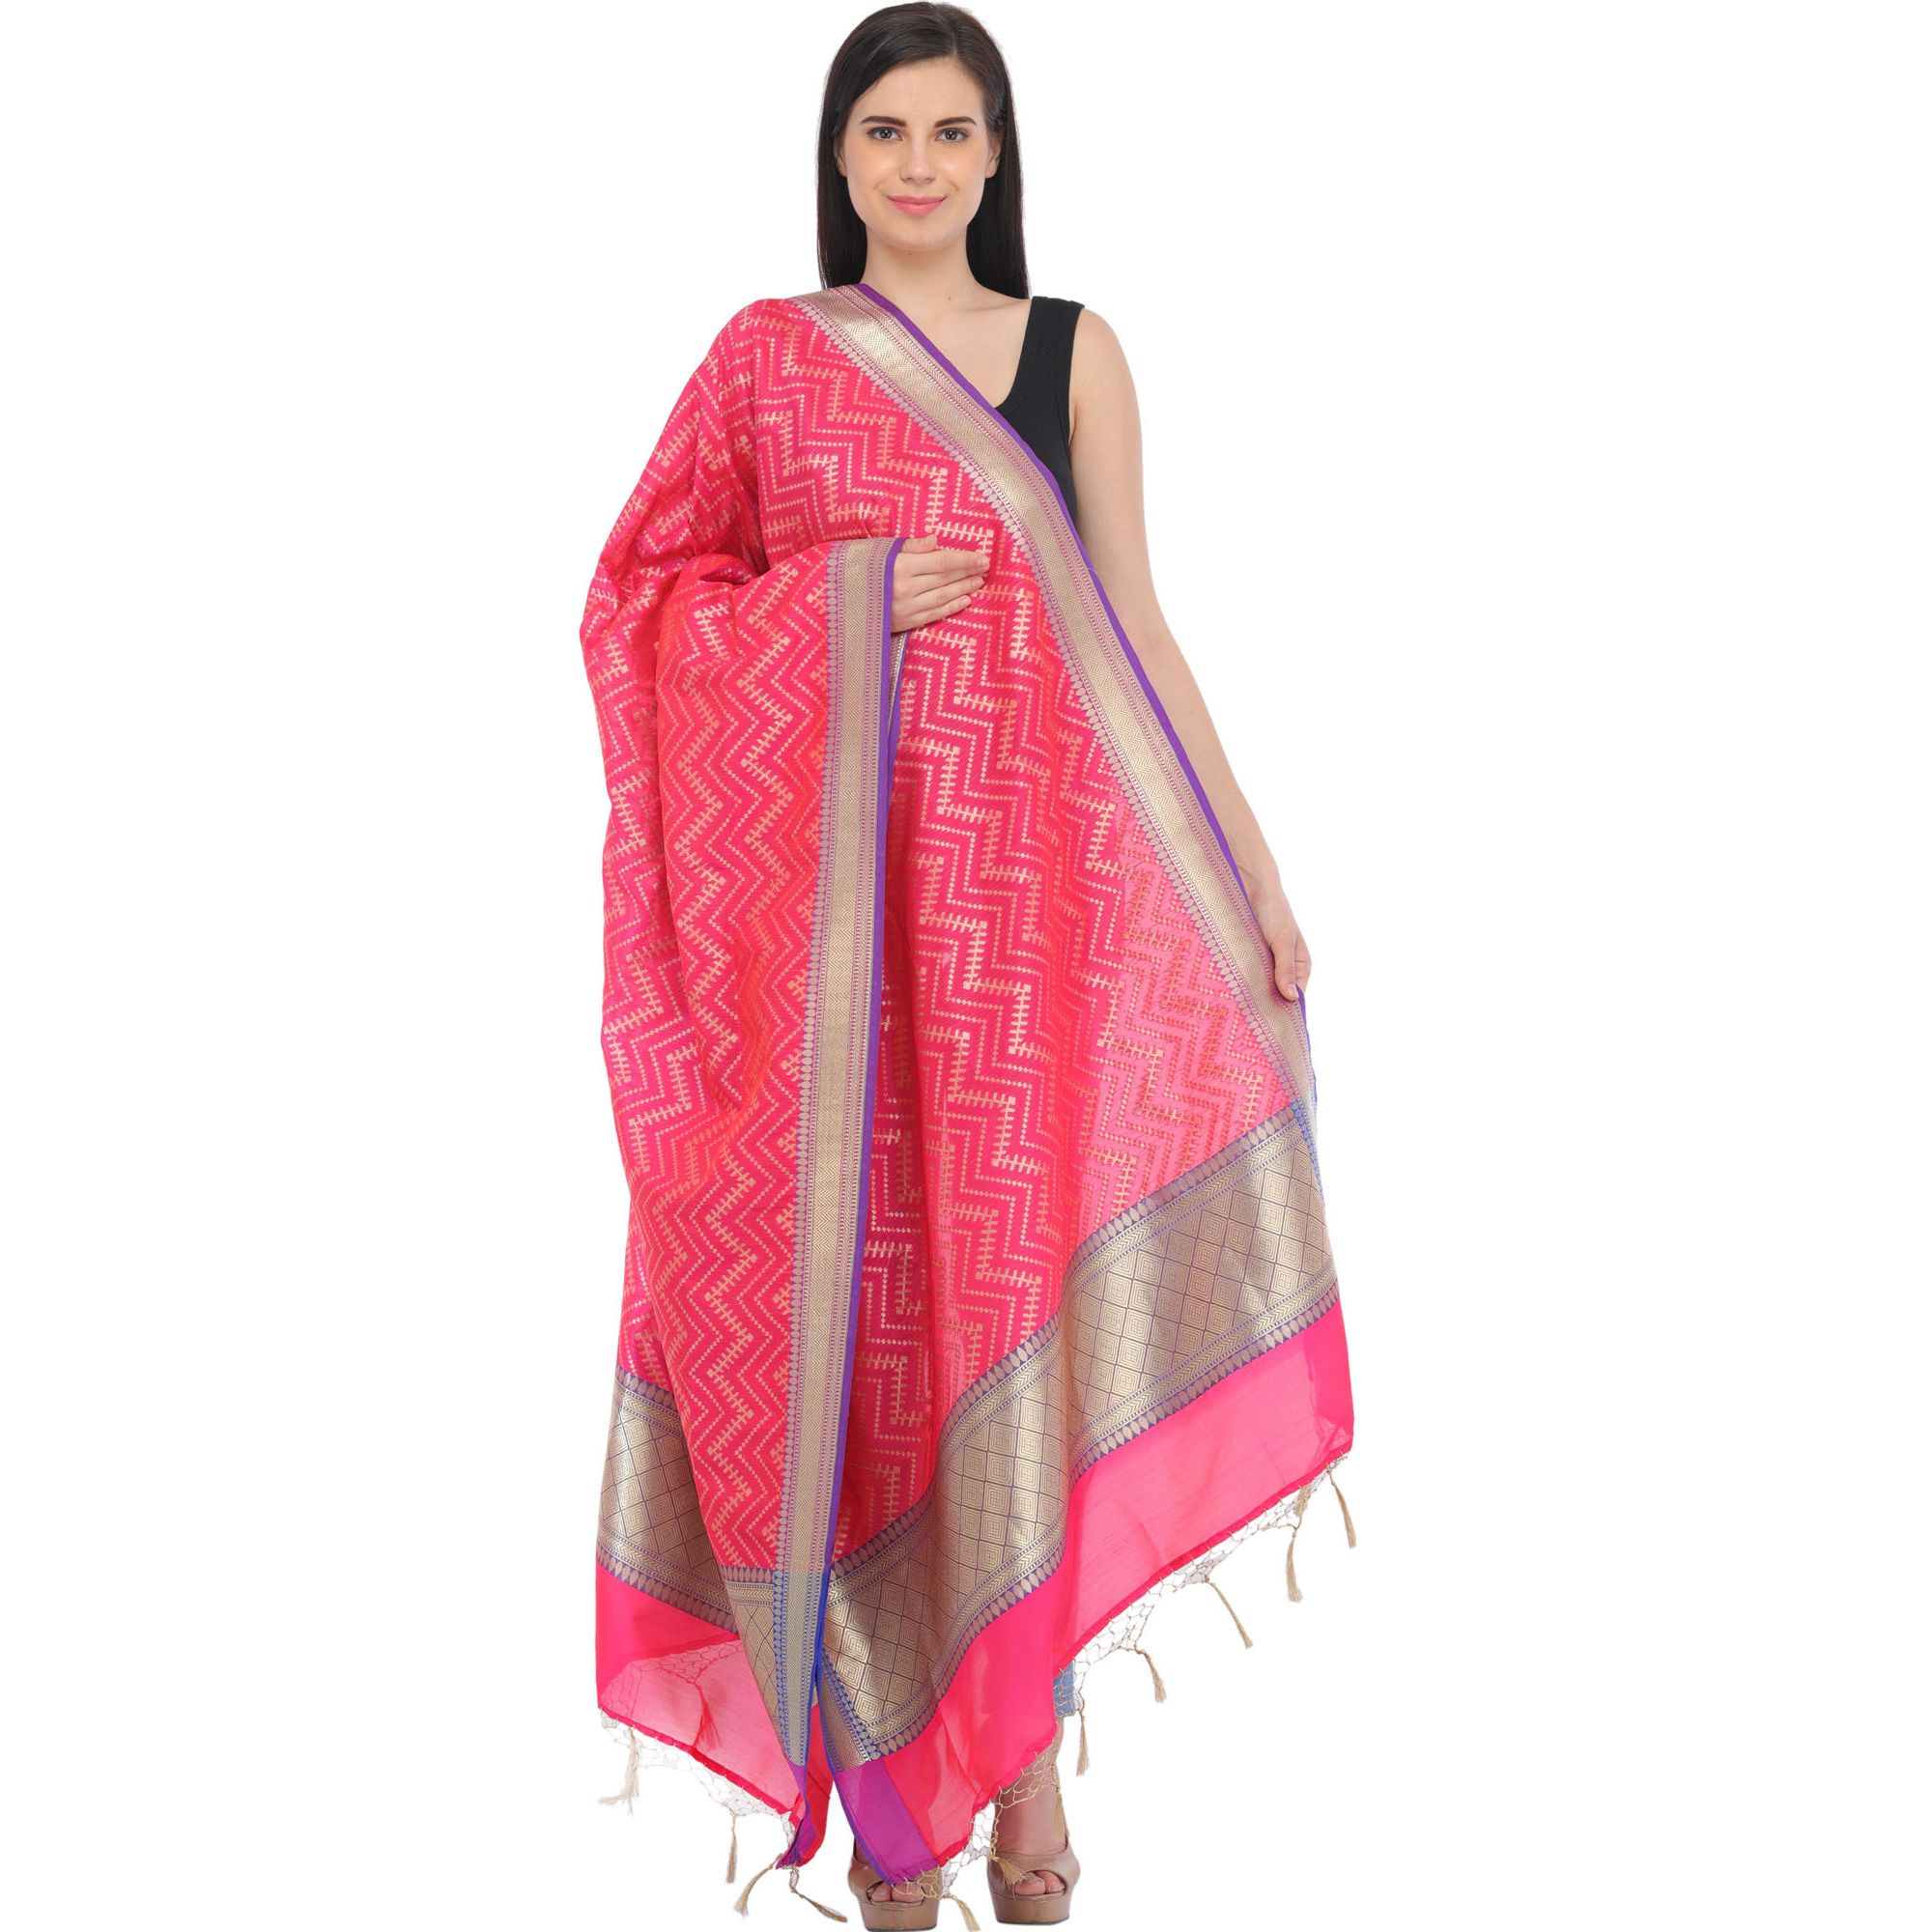 Raspberry-Sorbet Banarasi Brocaded Dupatta with Zigzag Weave and Tassels on Border